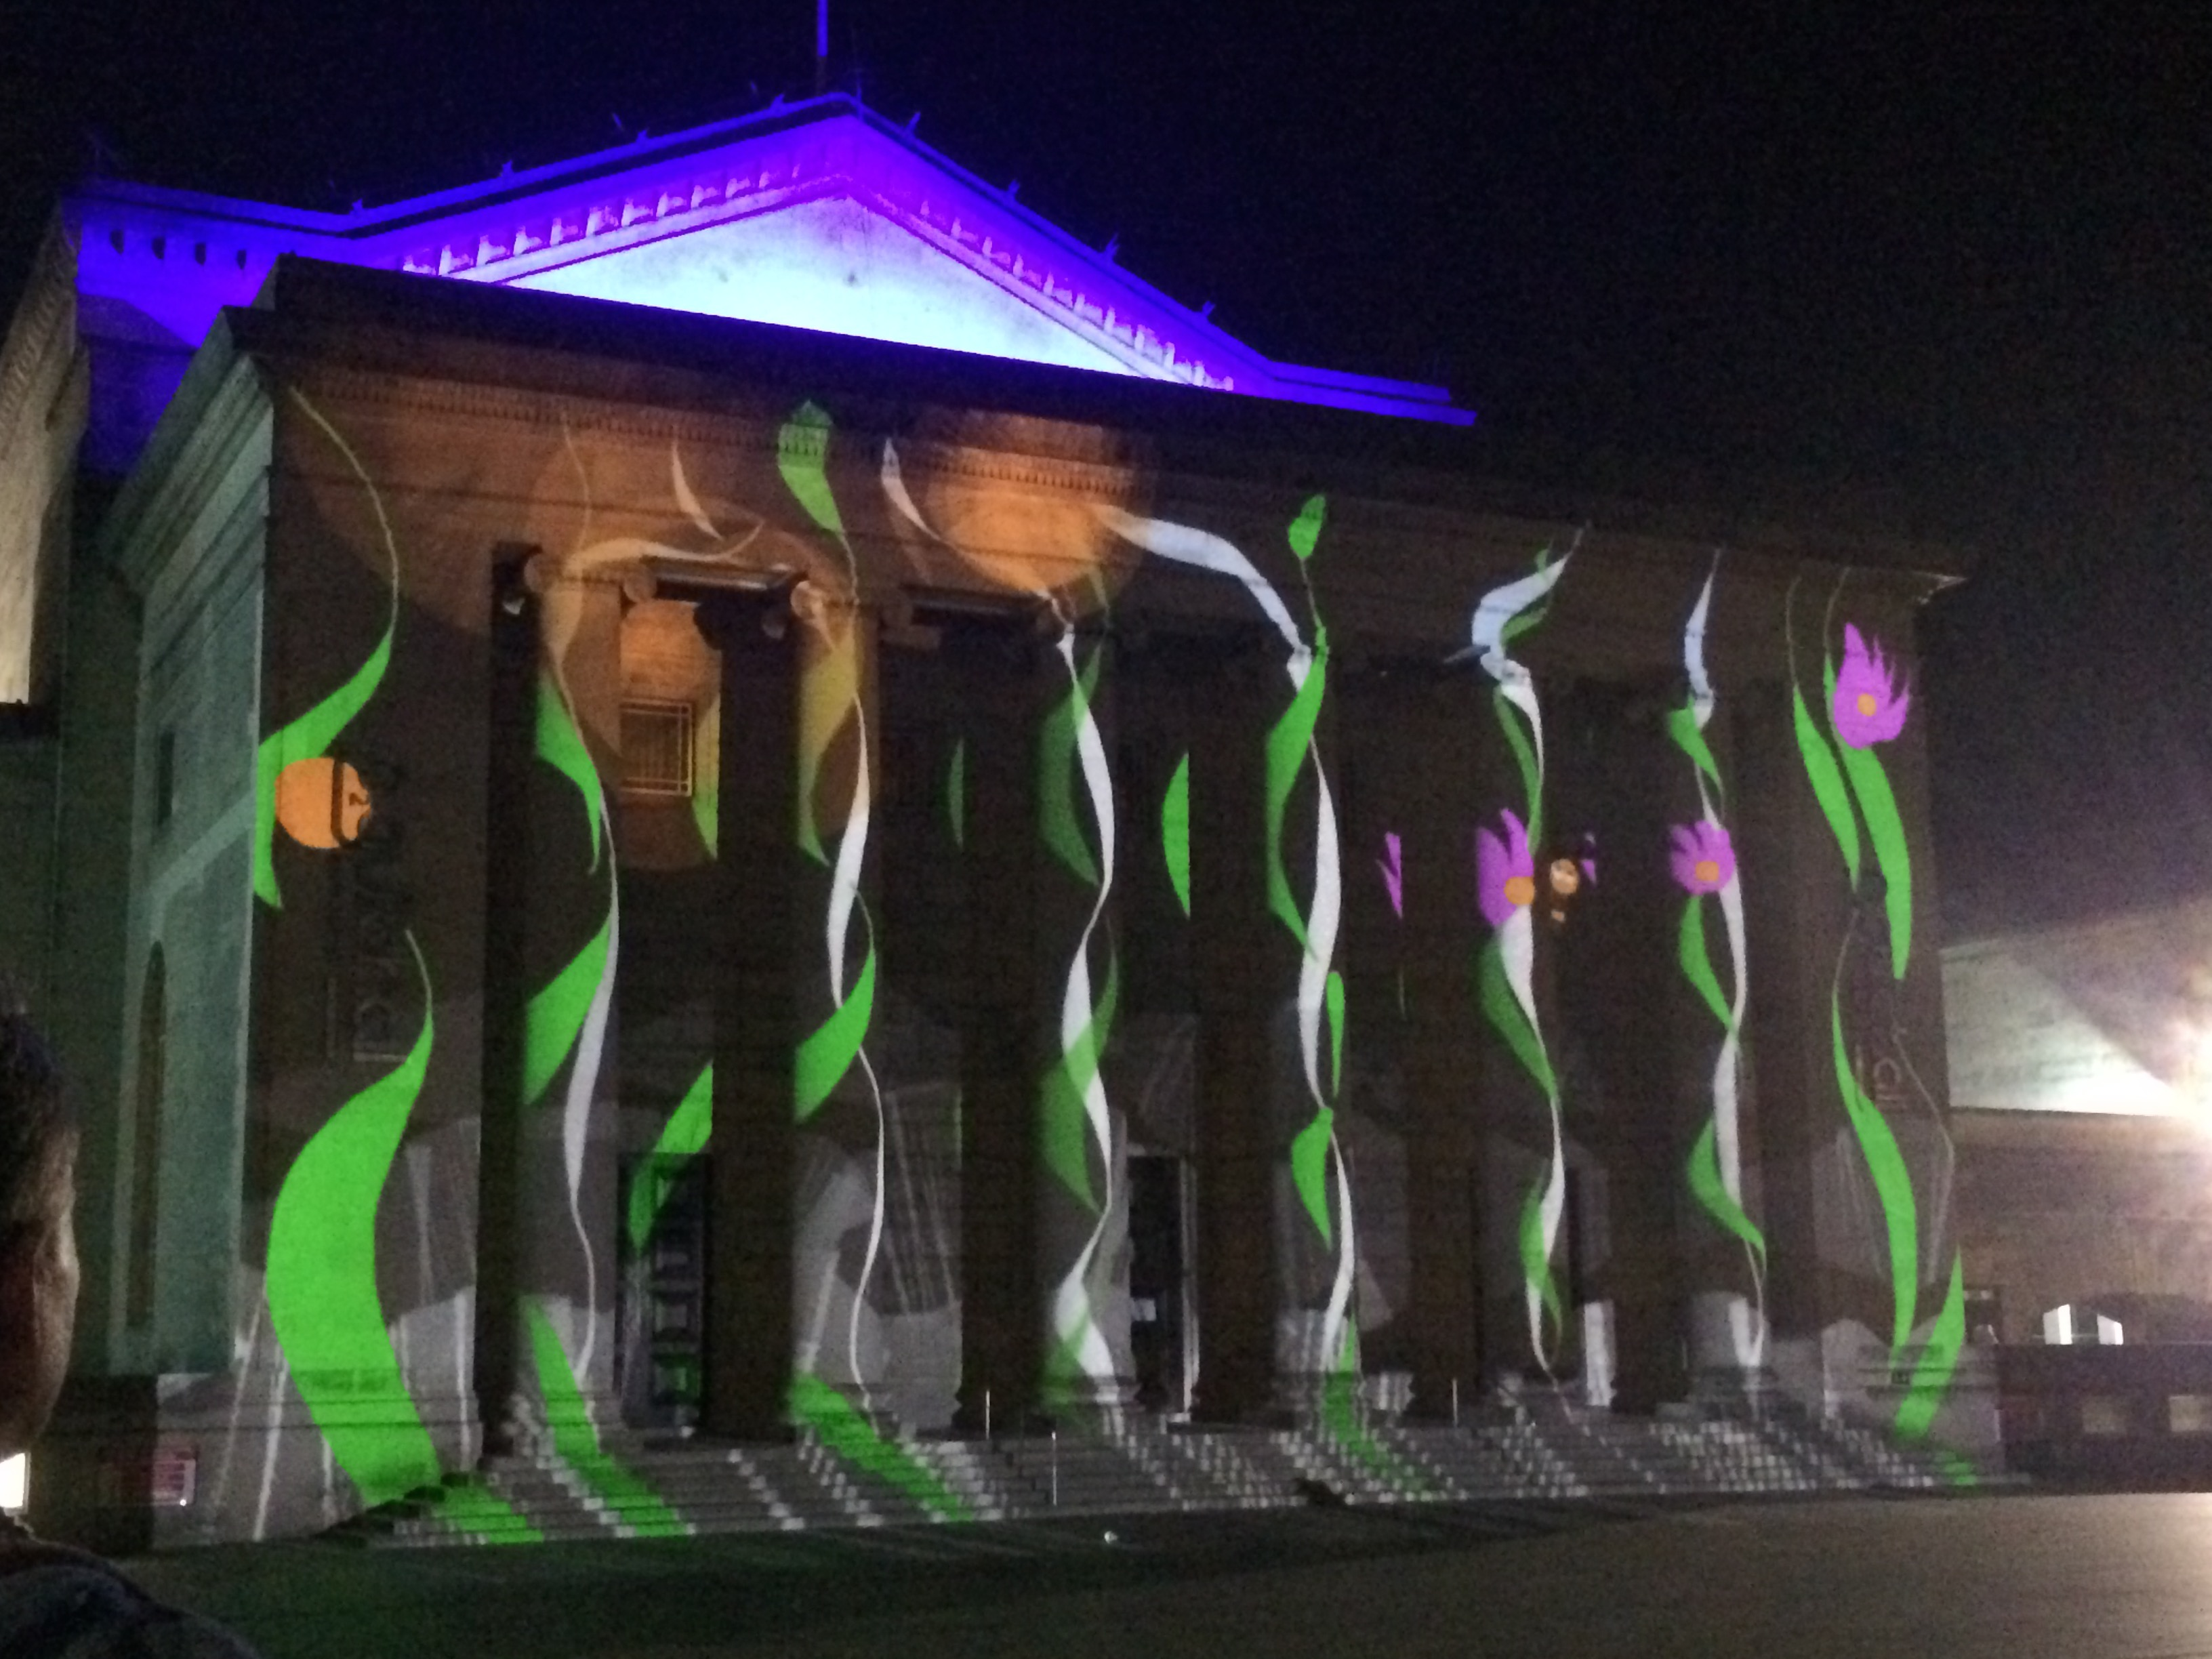 Let there be light! Southampton's 'Lighten Up' returns